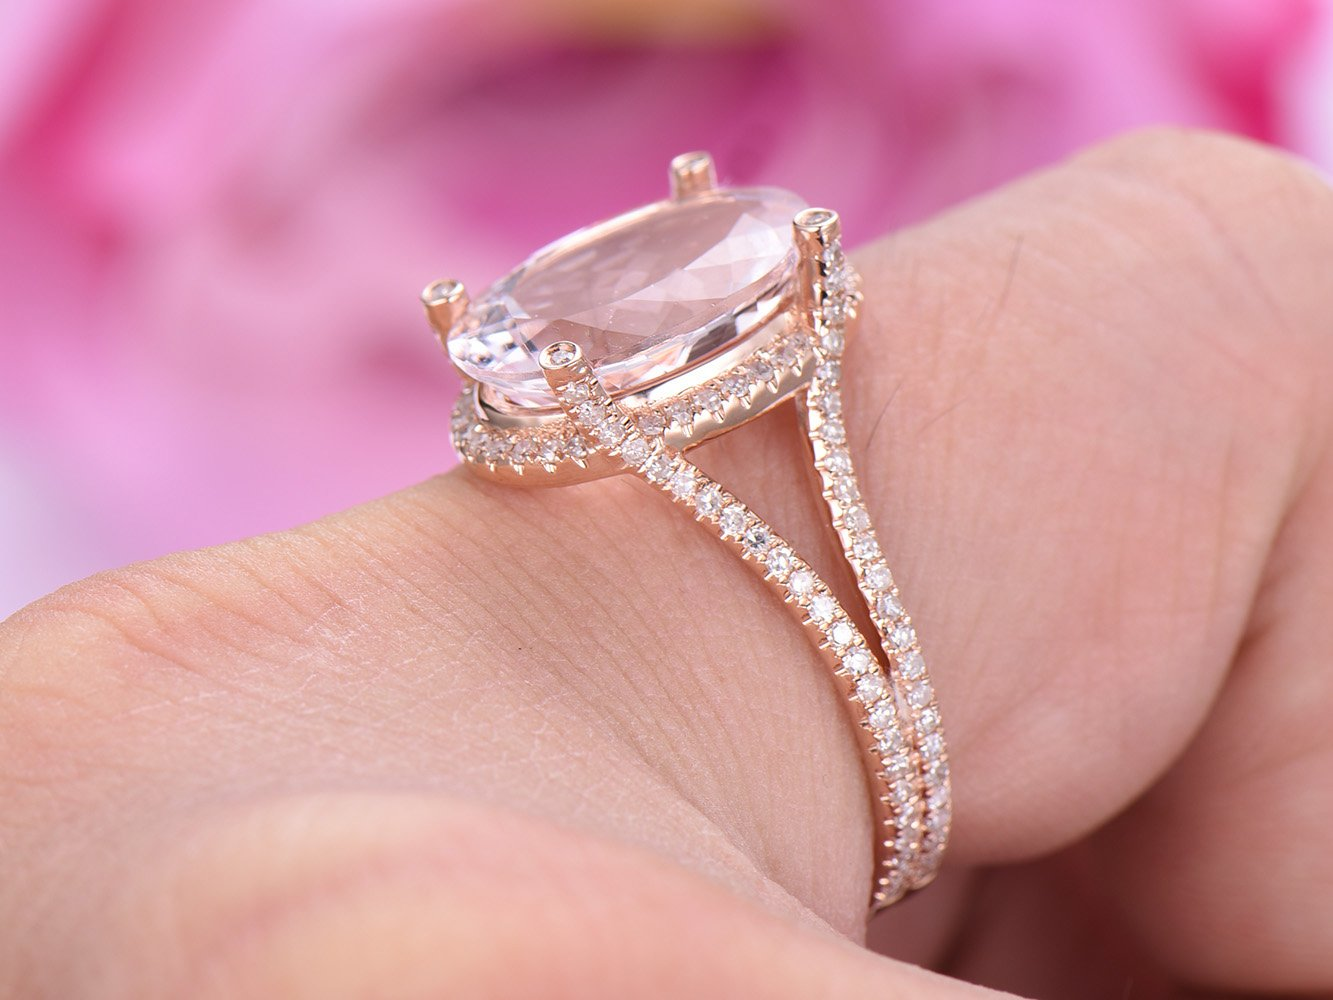 Amazon.com: Elongated Oval Morganite Engagement Ring Pave Diamond ...